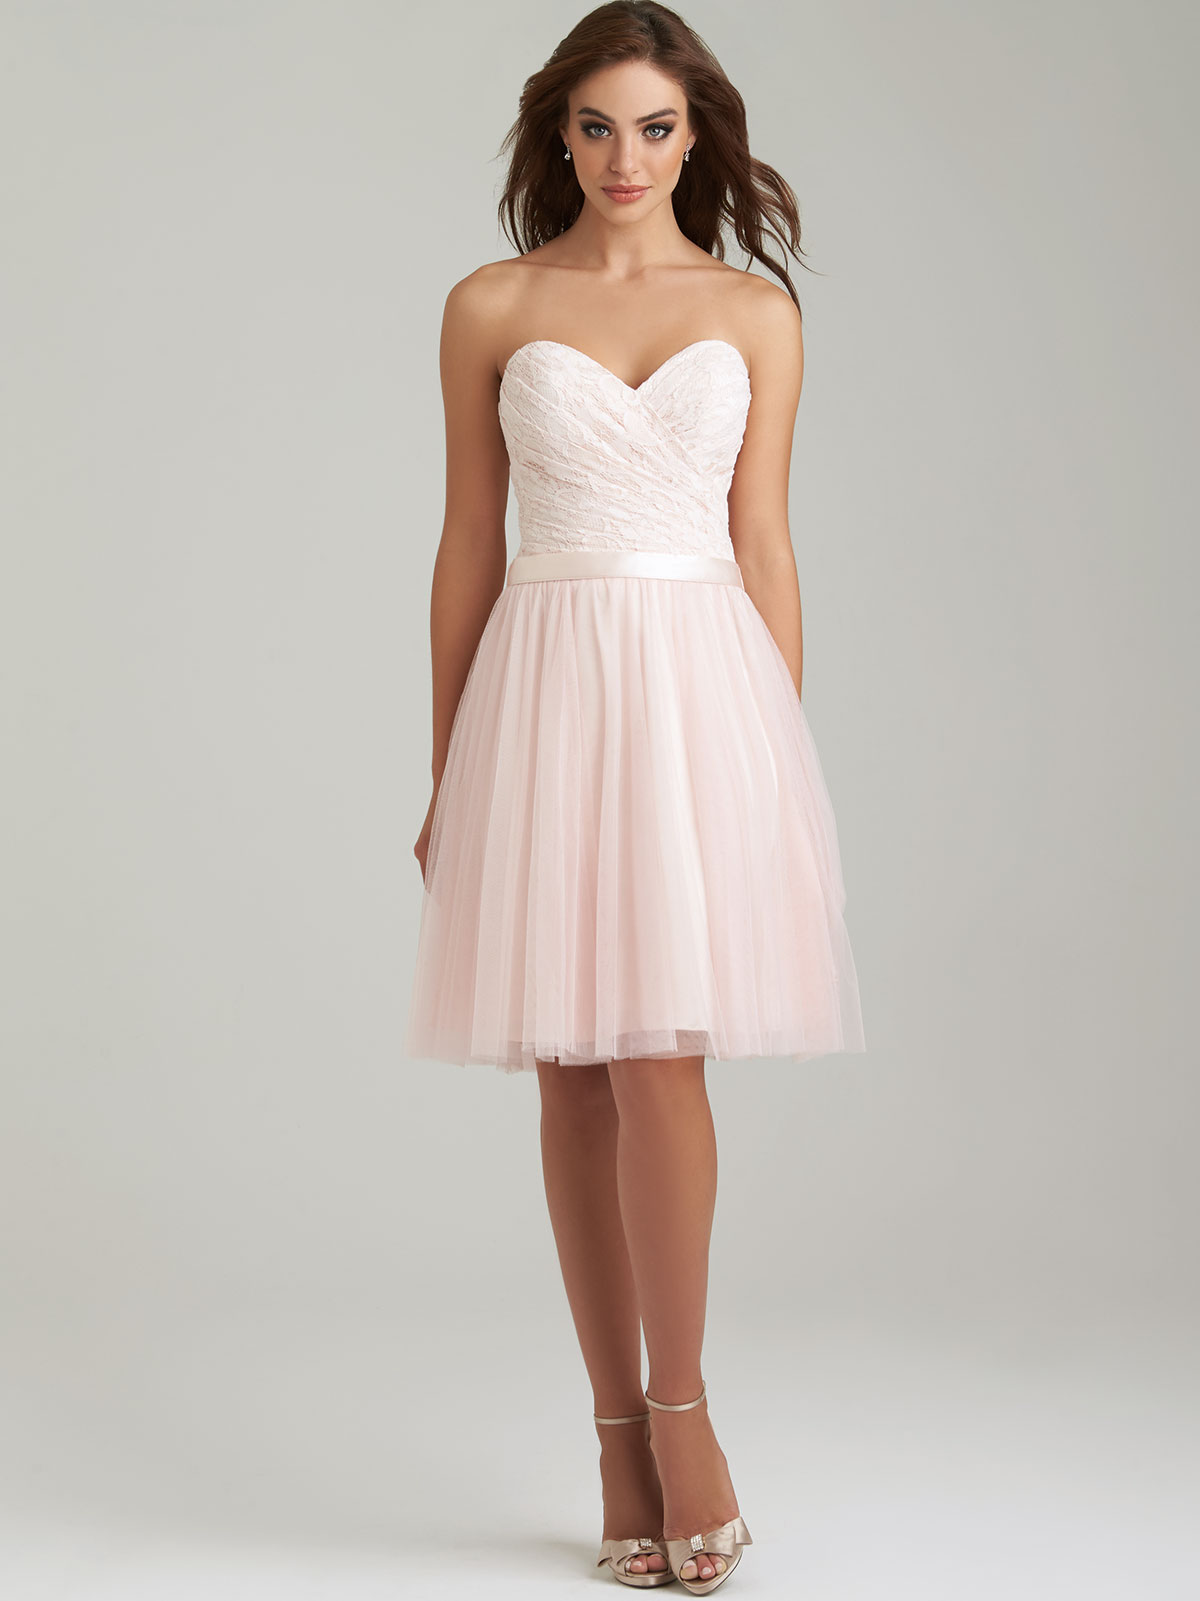 Allure 1451 sweetheart short bridesmaid dressdimitradesigns allure 1451 sweetheart bridesmaid dress ombrellifo Images